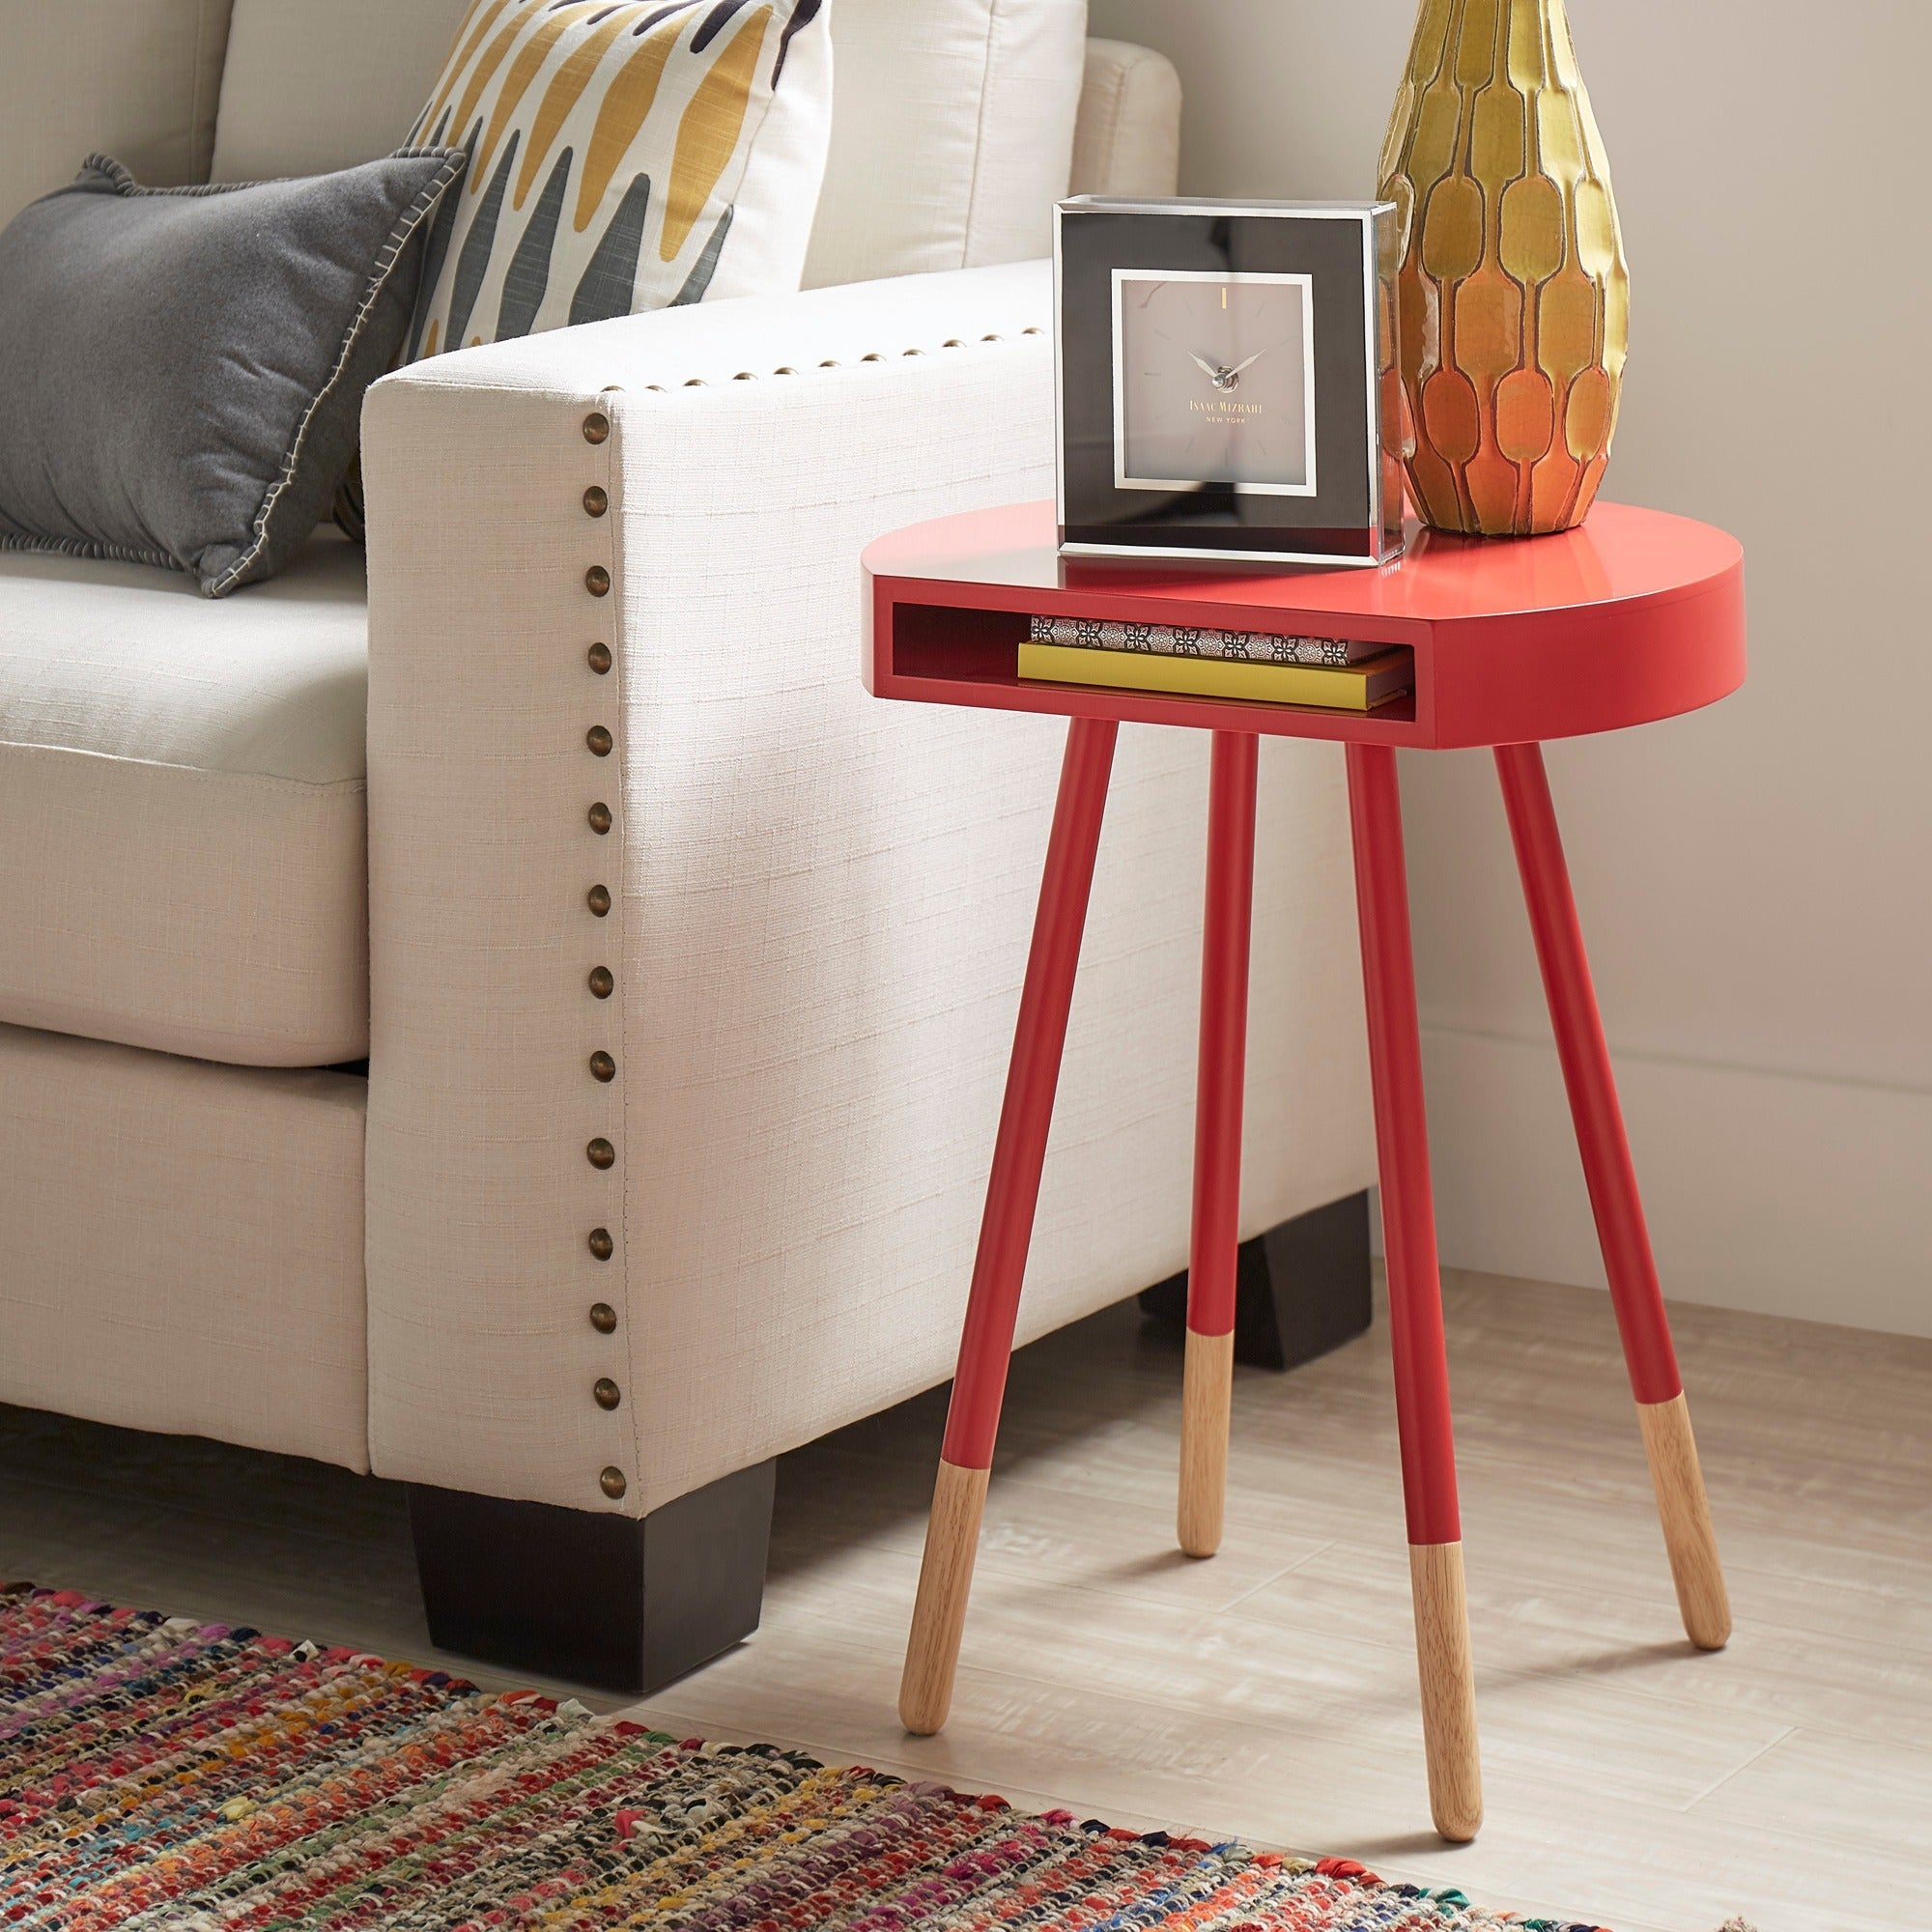 marcella paintdipped round end table inspire q modern  ebay - marcellapaintdippedroundendtableinspireq